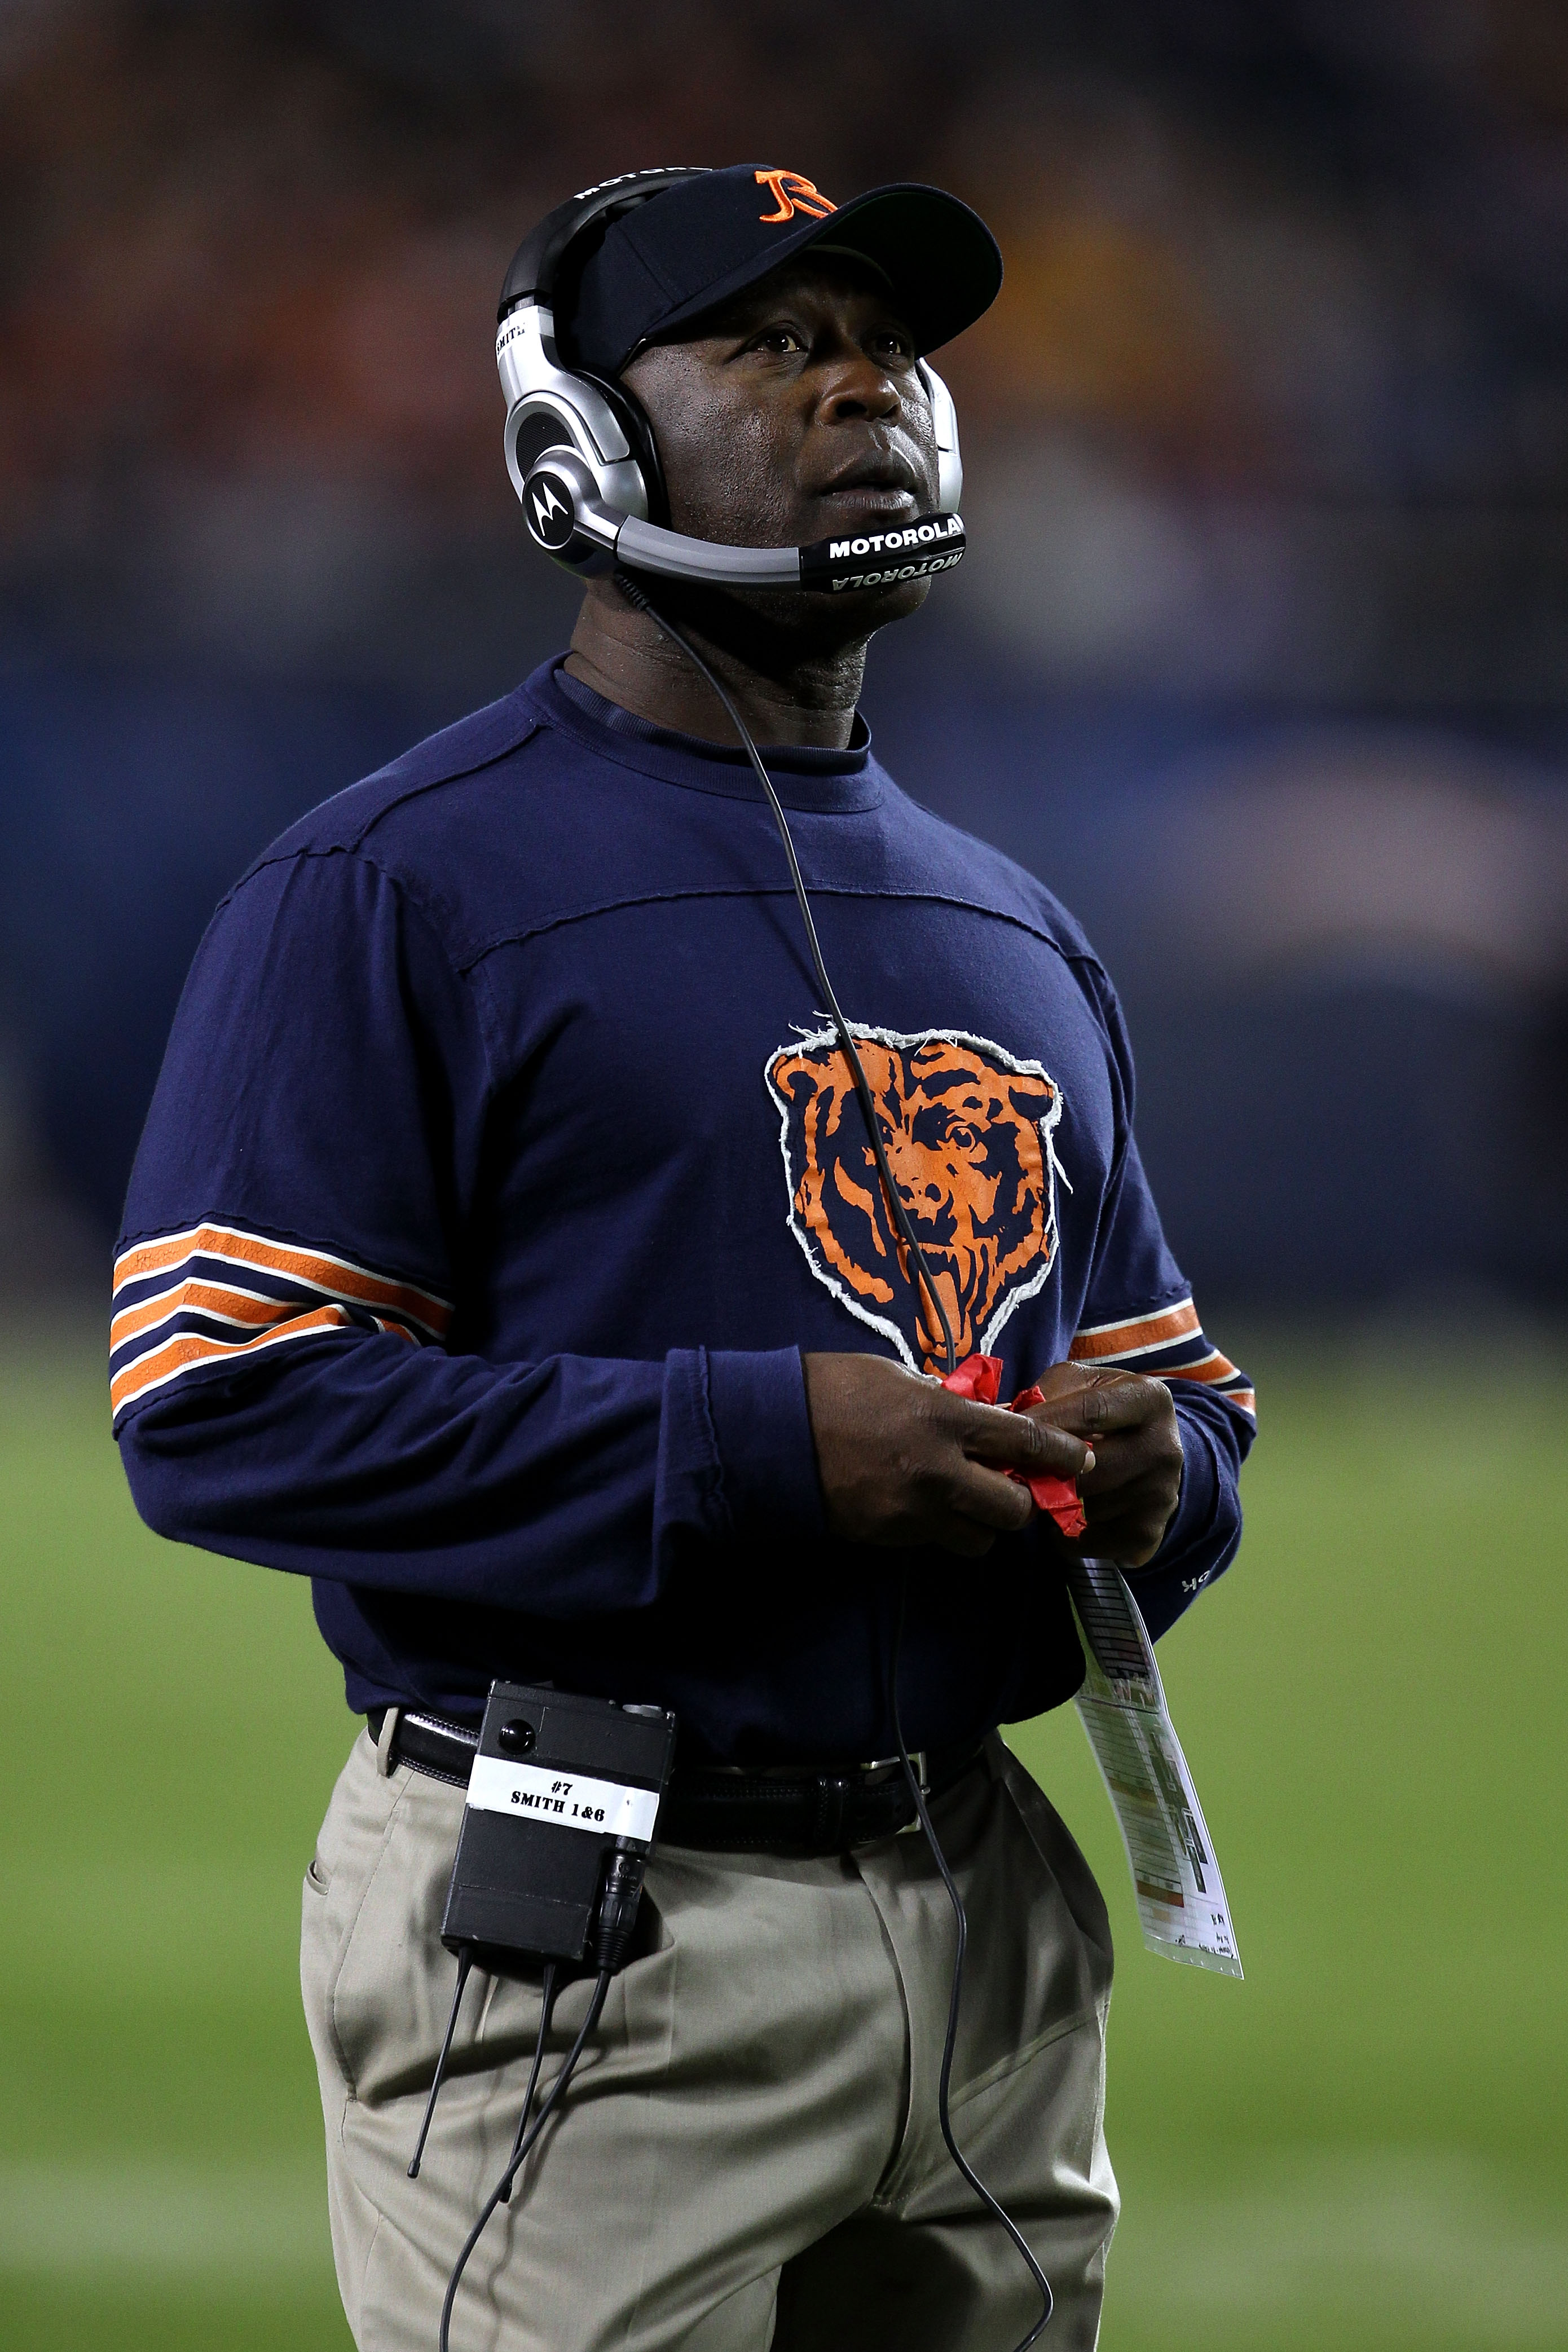 CHICAGO - SEPTEMBER 27:  Head coach Lovie Smith of the Chicago Bears looks on against the Green Bay Packers at Soldier Field on September 27, 2010 in Chicago, Illinois.  (Photo by Jonathan Daniel/Getty Images)